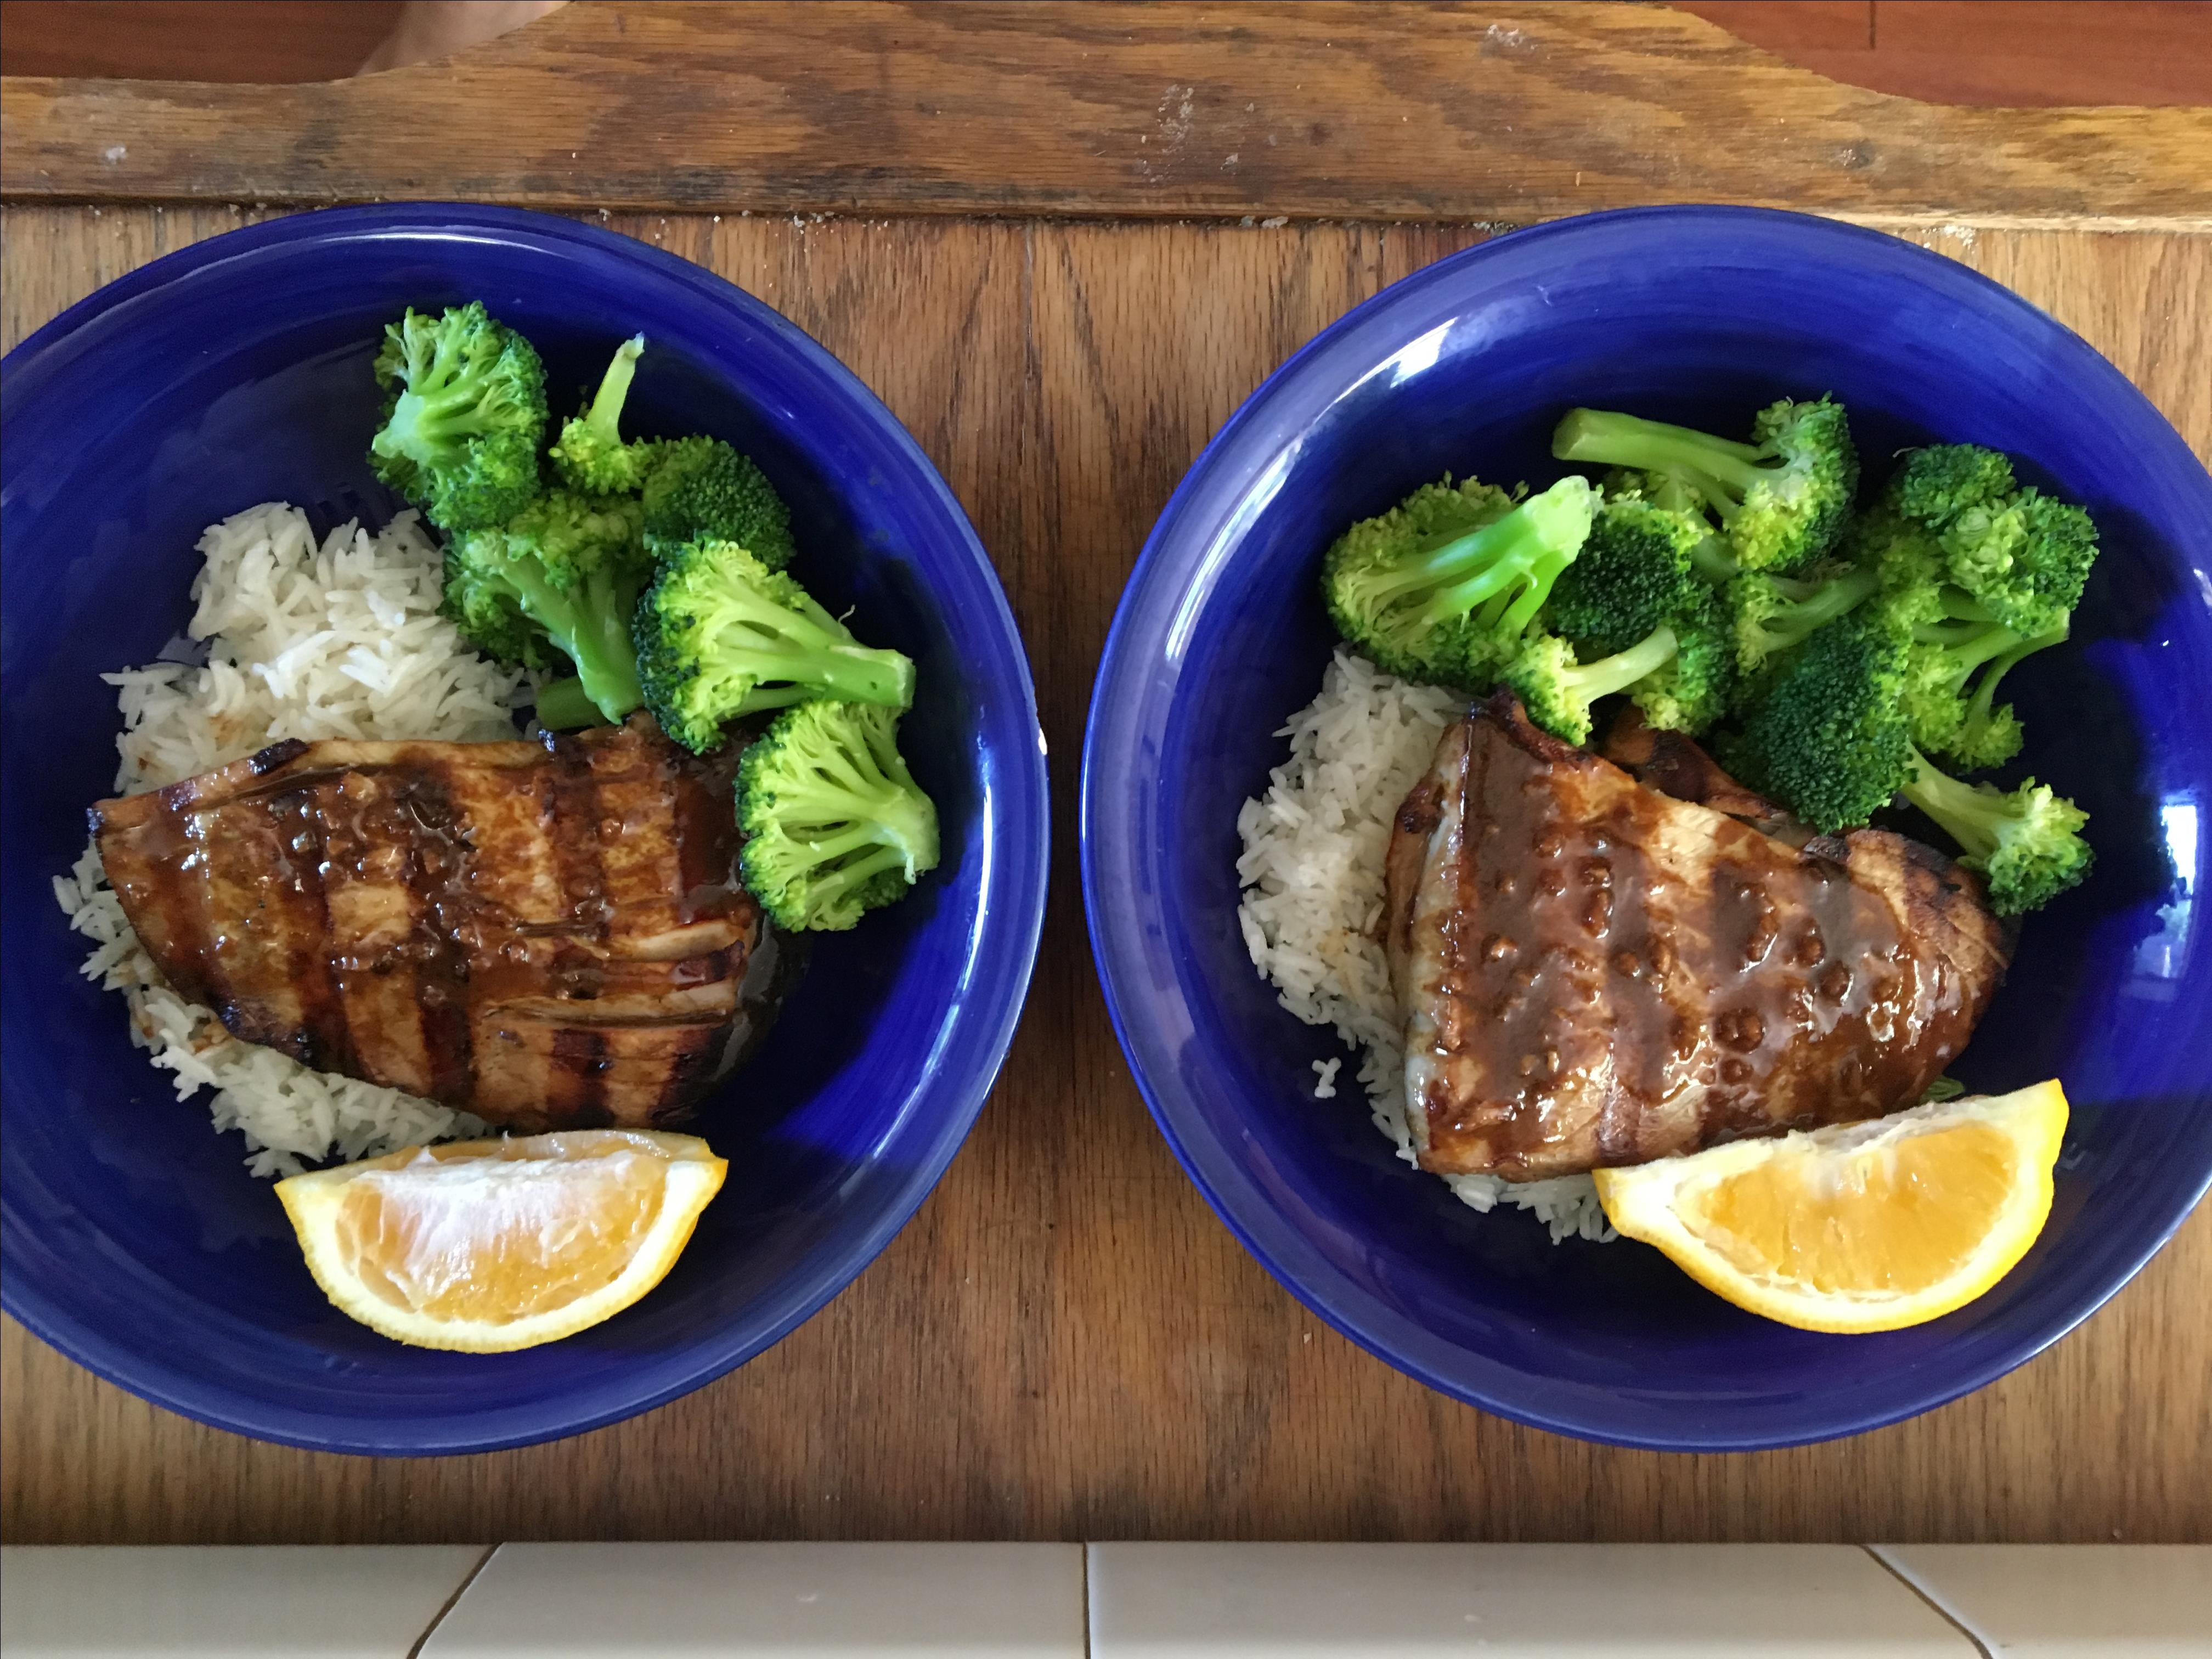 Grilled Yellowfin Tuna with Marinade Denise Fitzgerald